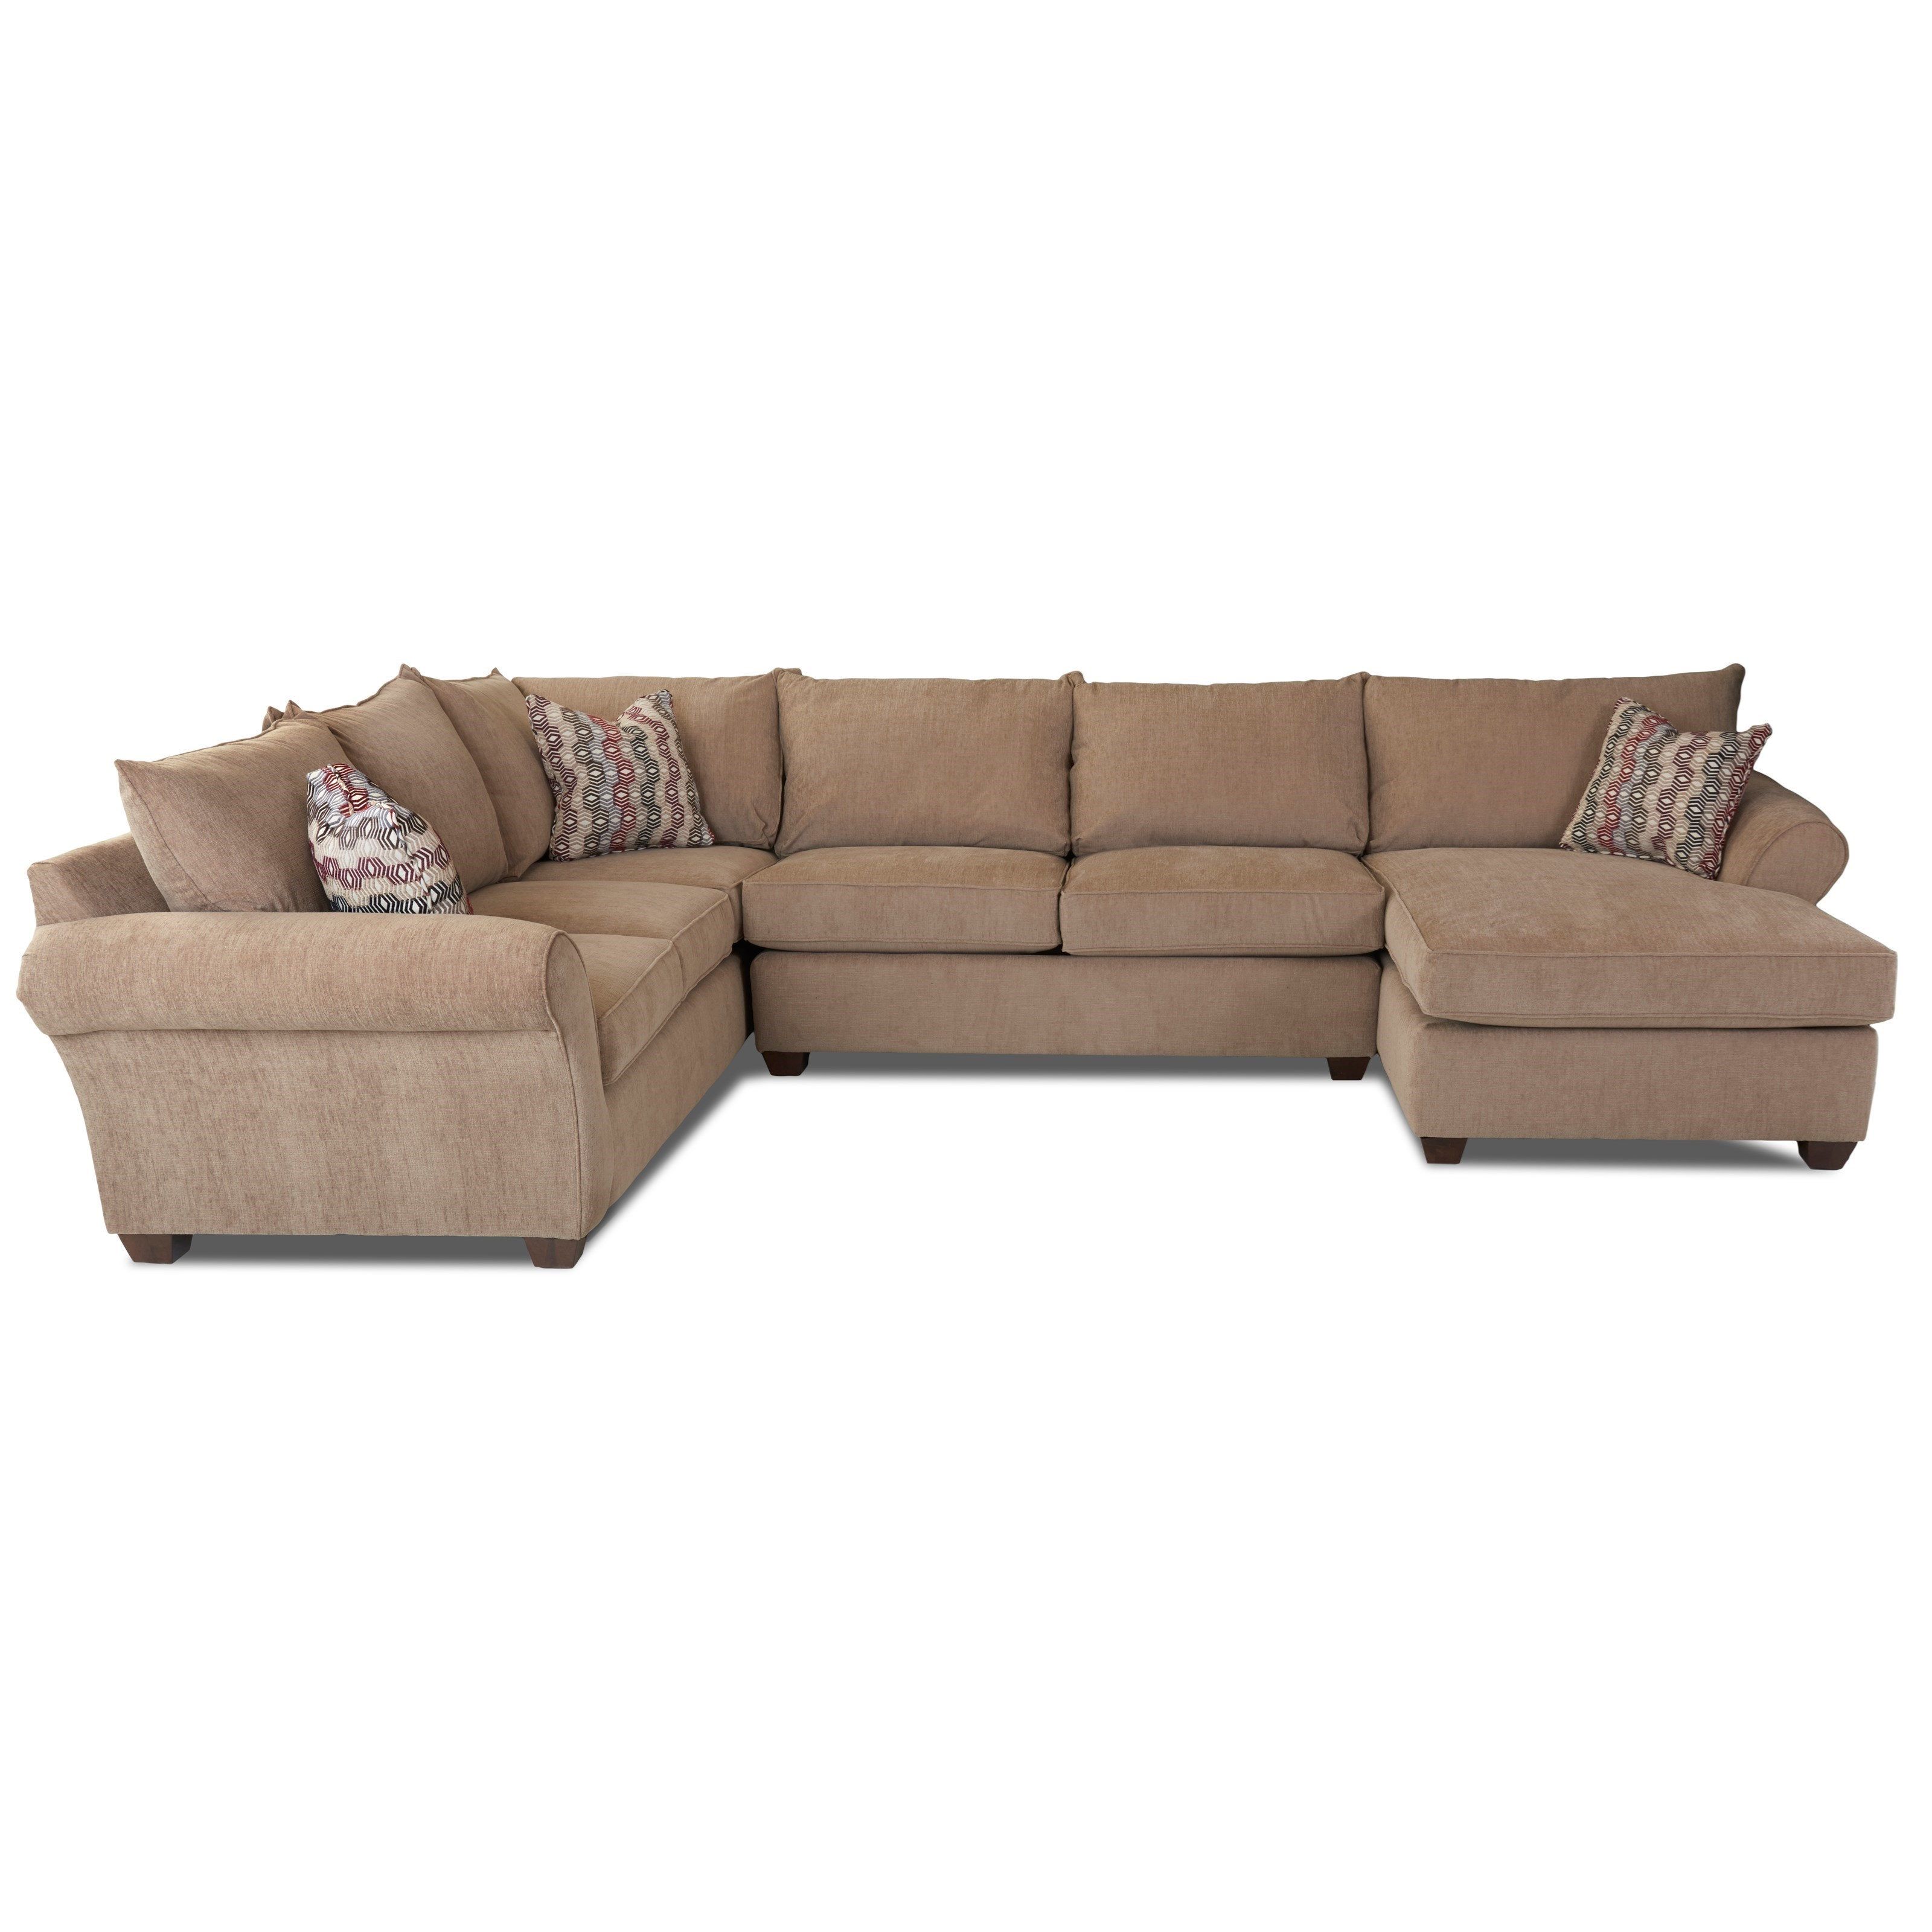 Fletcher Sectional Sofa by Klaussner at Northeast Factory Direct